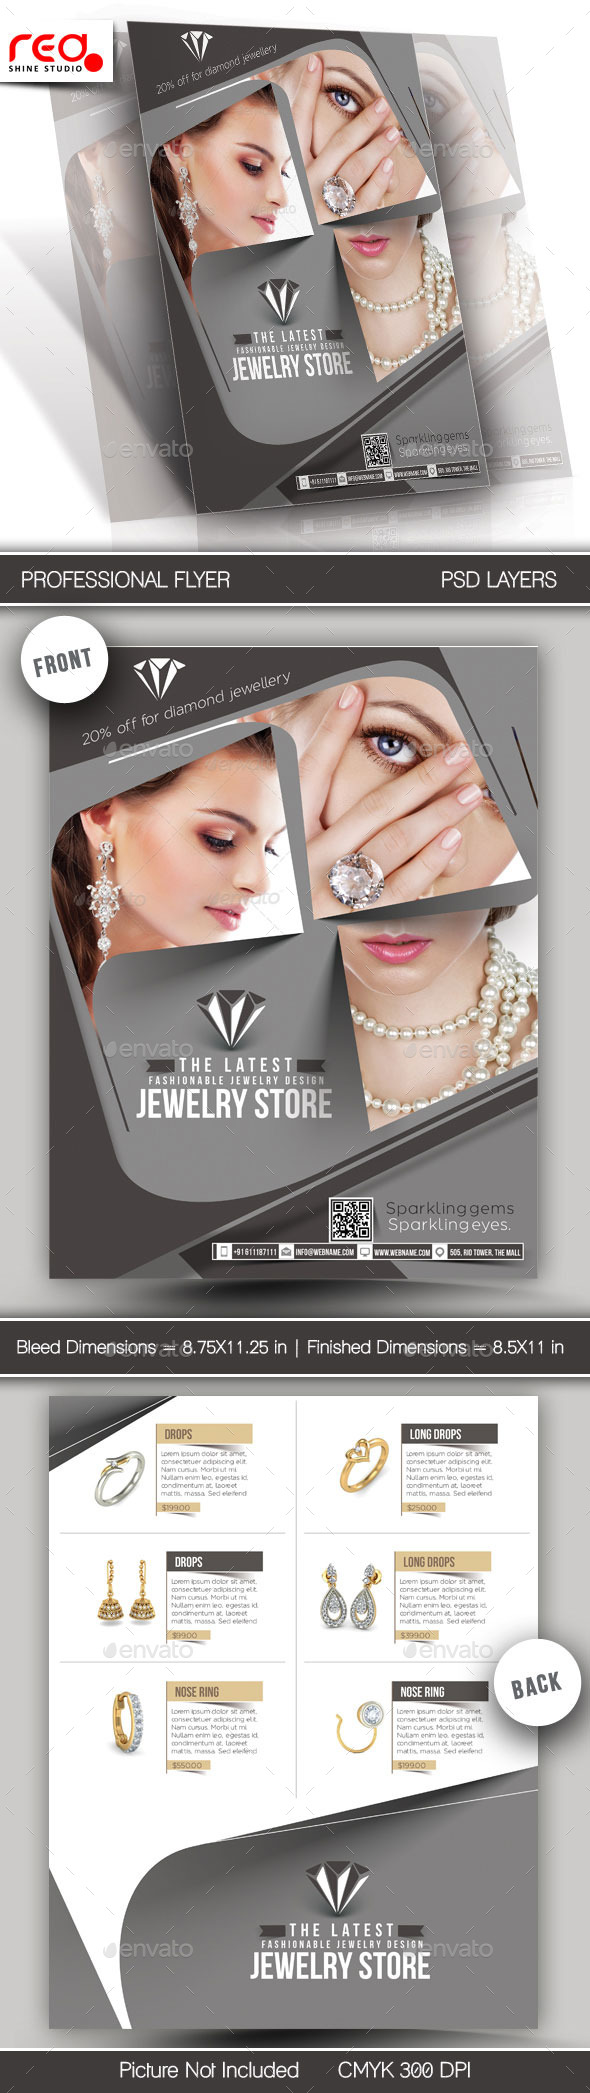 Jewelry Store Flyer & Poster Template -1 - Commerce Flyers